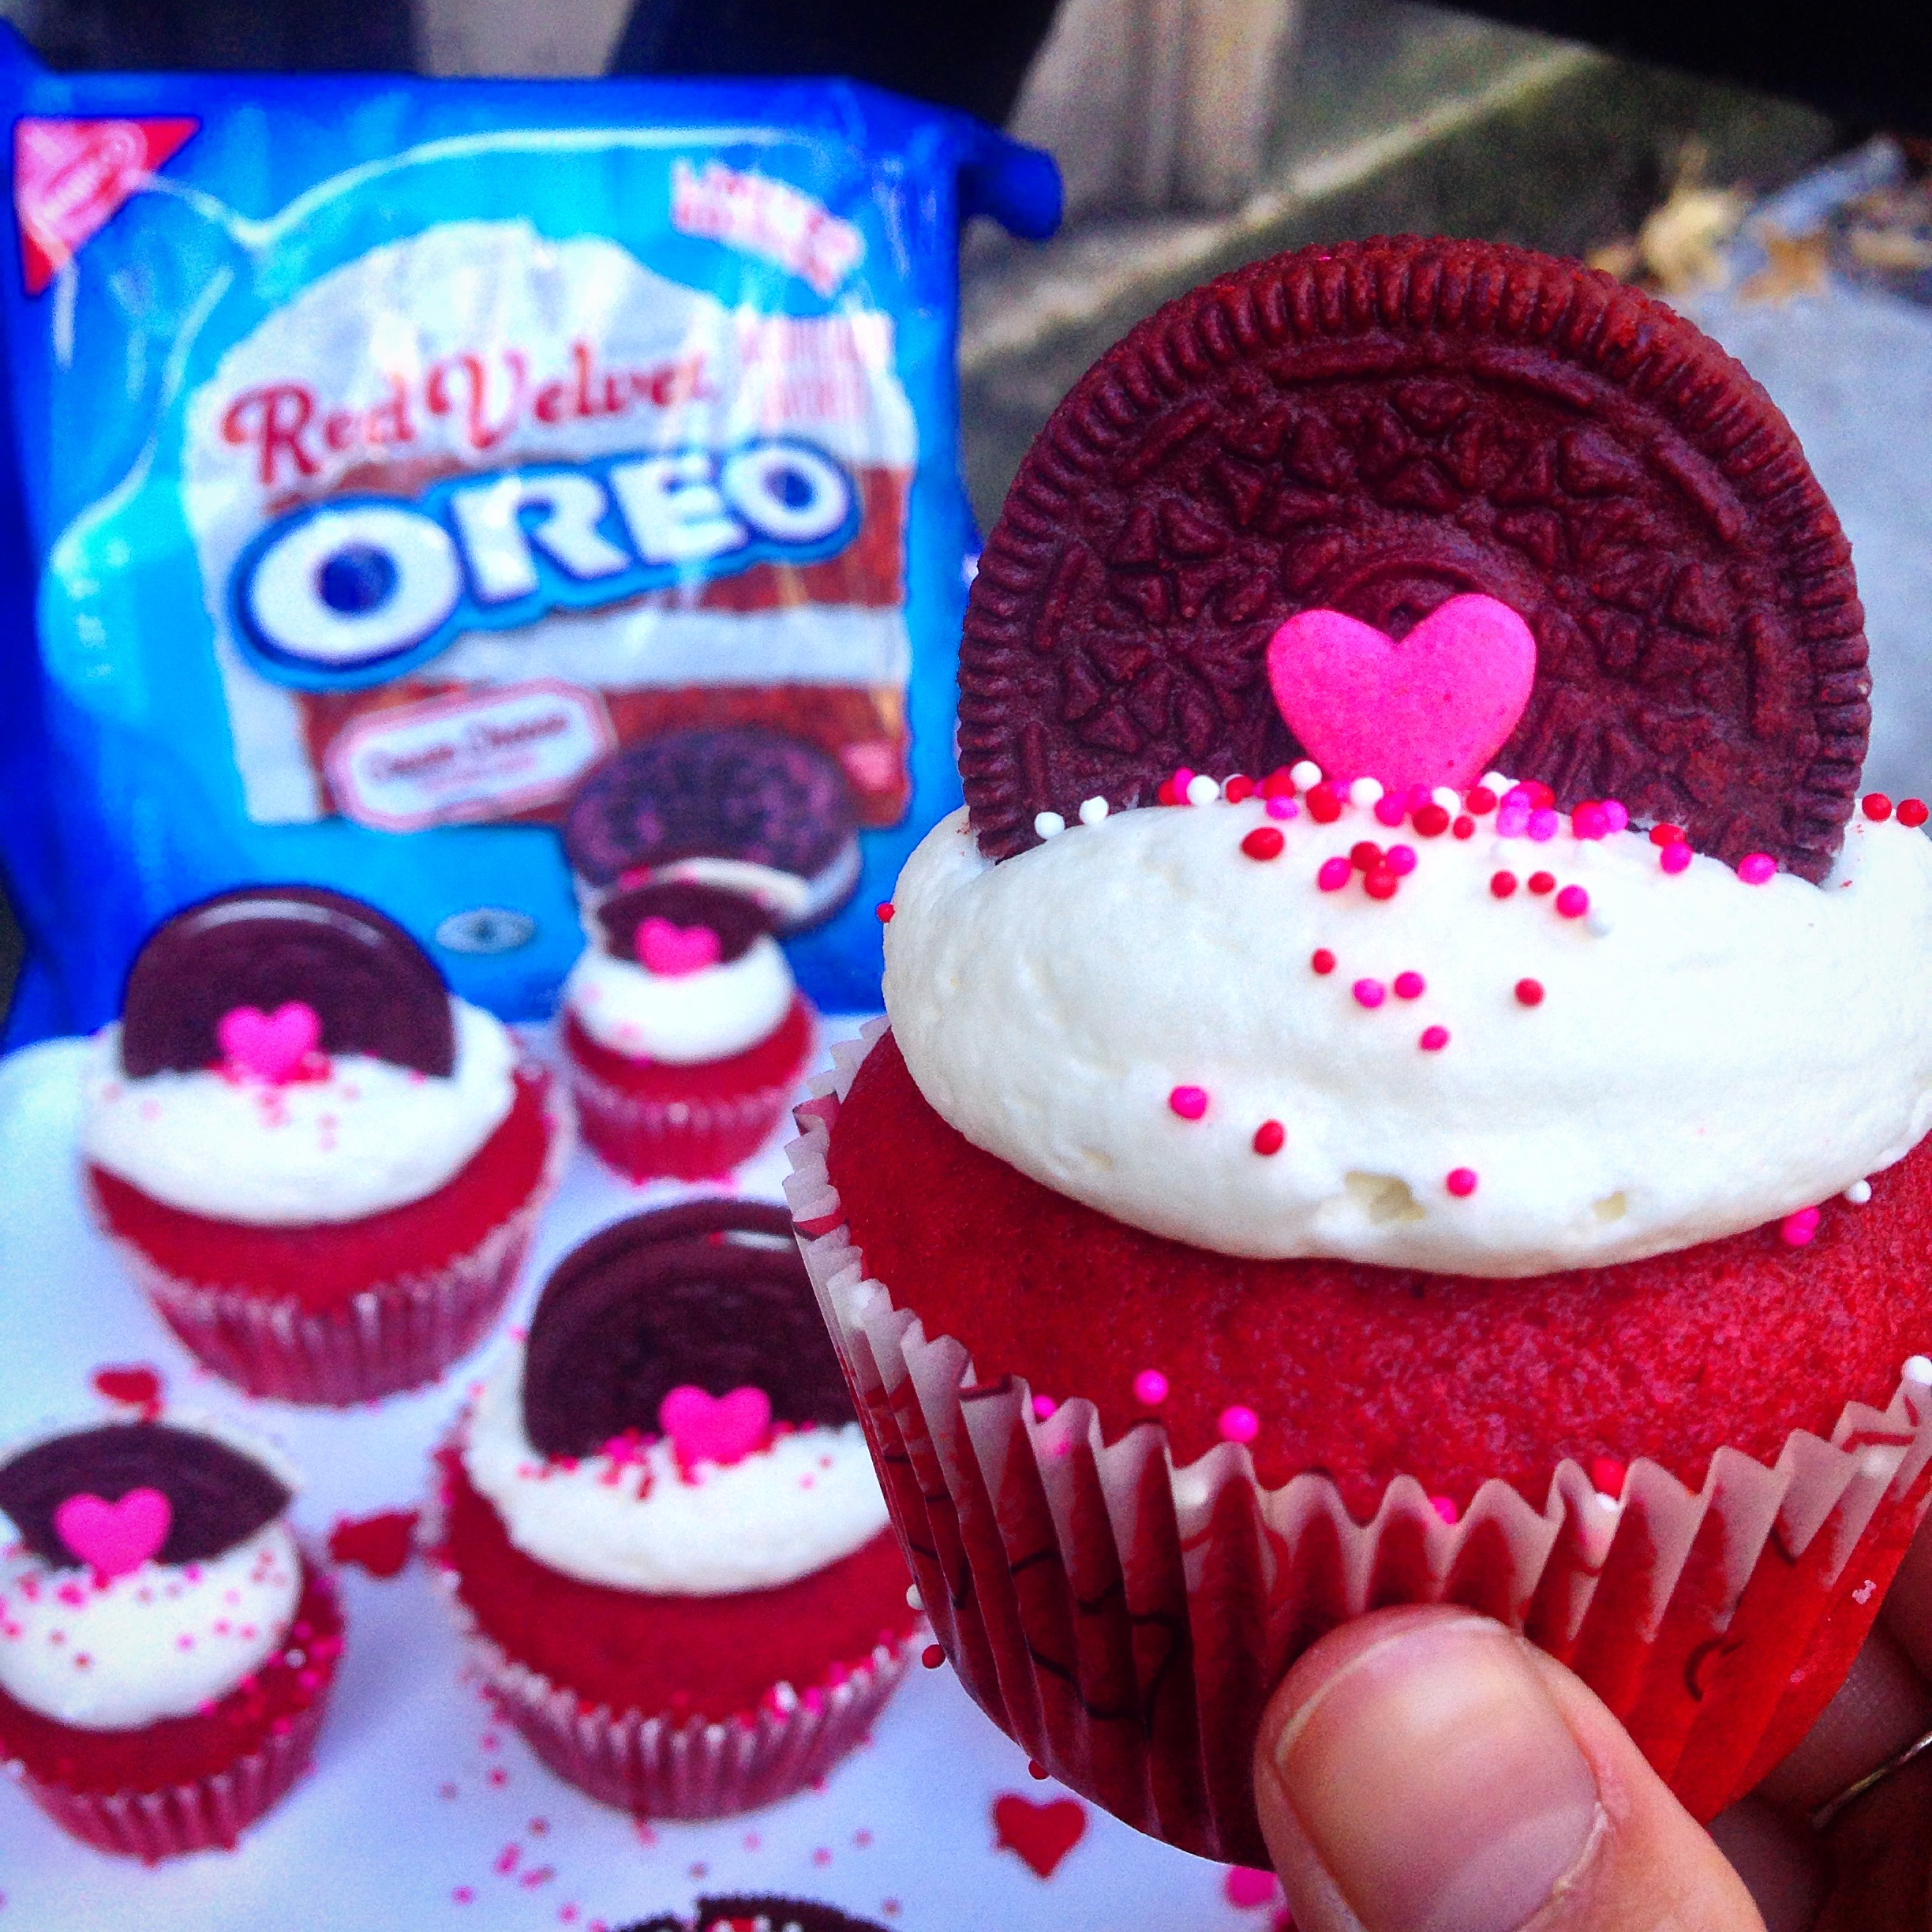 Red Velvet Oreo Cupcakes Press One Red Velvet Oreo Into